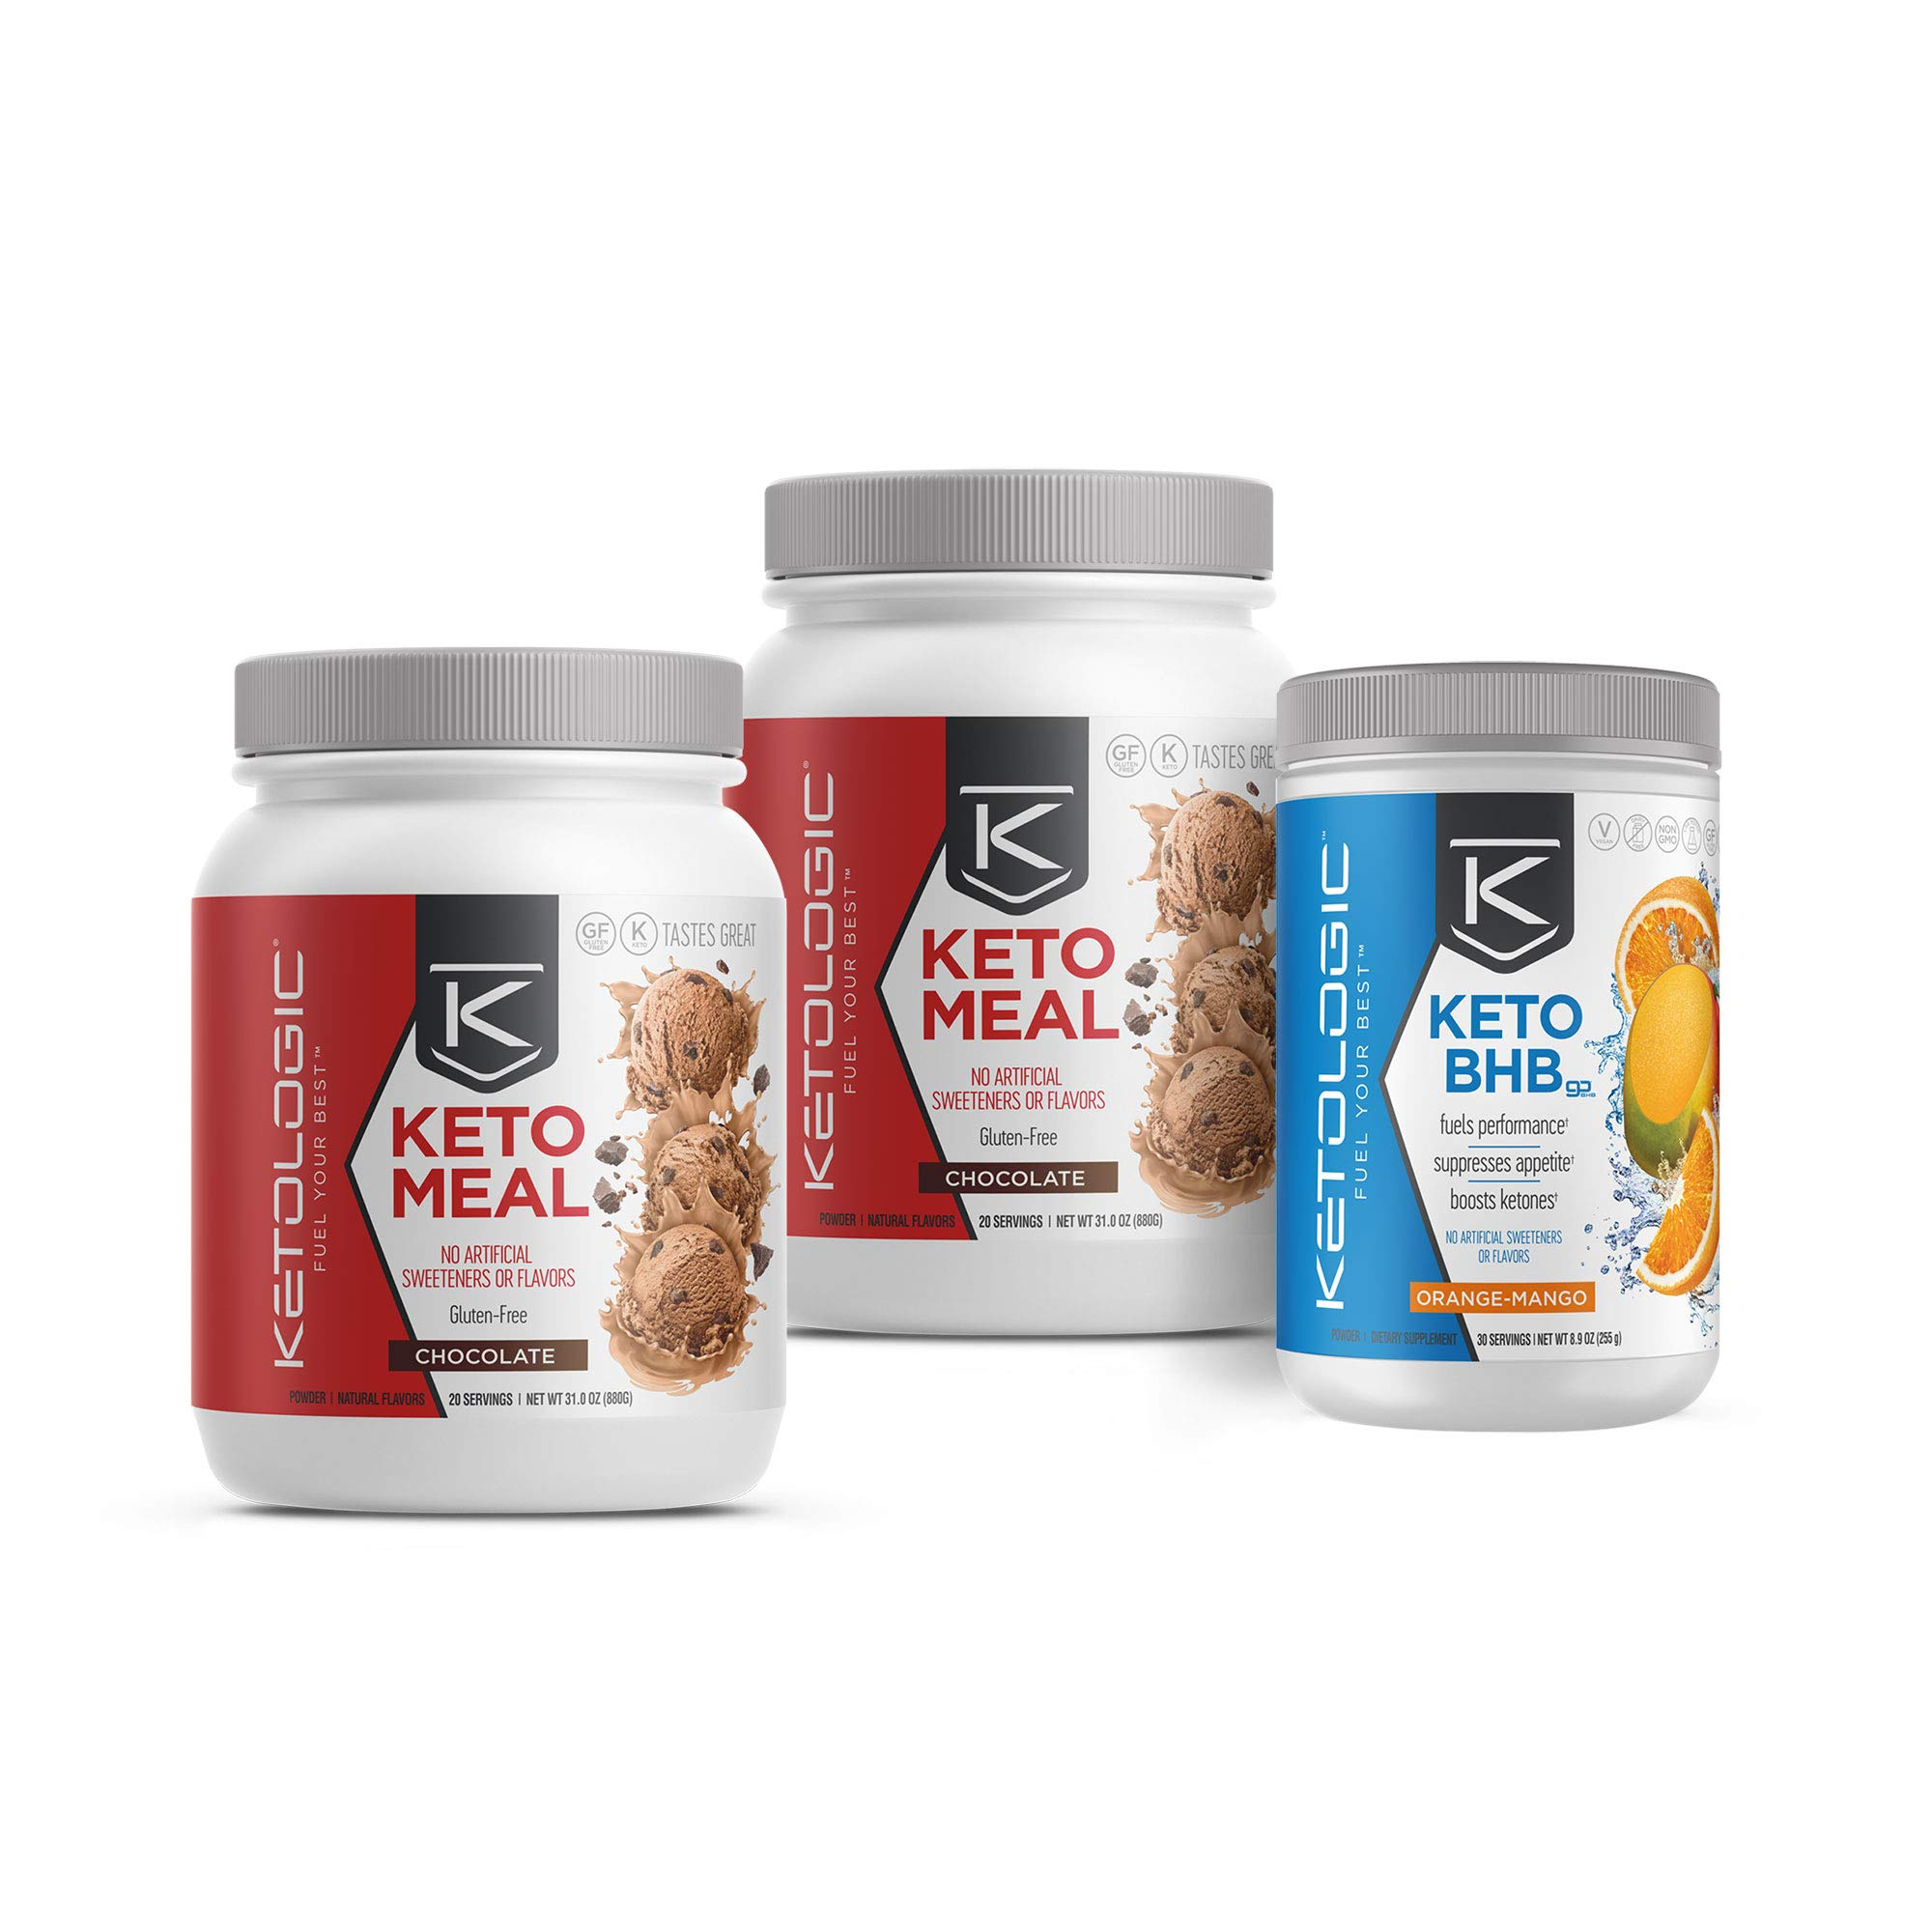 KetoLogic Keto 30 Challenge Bundle, 30-Day Supply | Includes 2 Meal Replacement Shakes with MCT [Chocolate] & 1 BHB Salt [Orange-Mango] | Suppresses Appetite, Promotes Weight Loss & Increases Energy by Ketologic